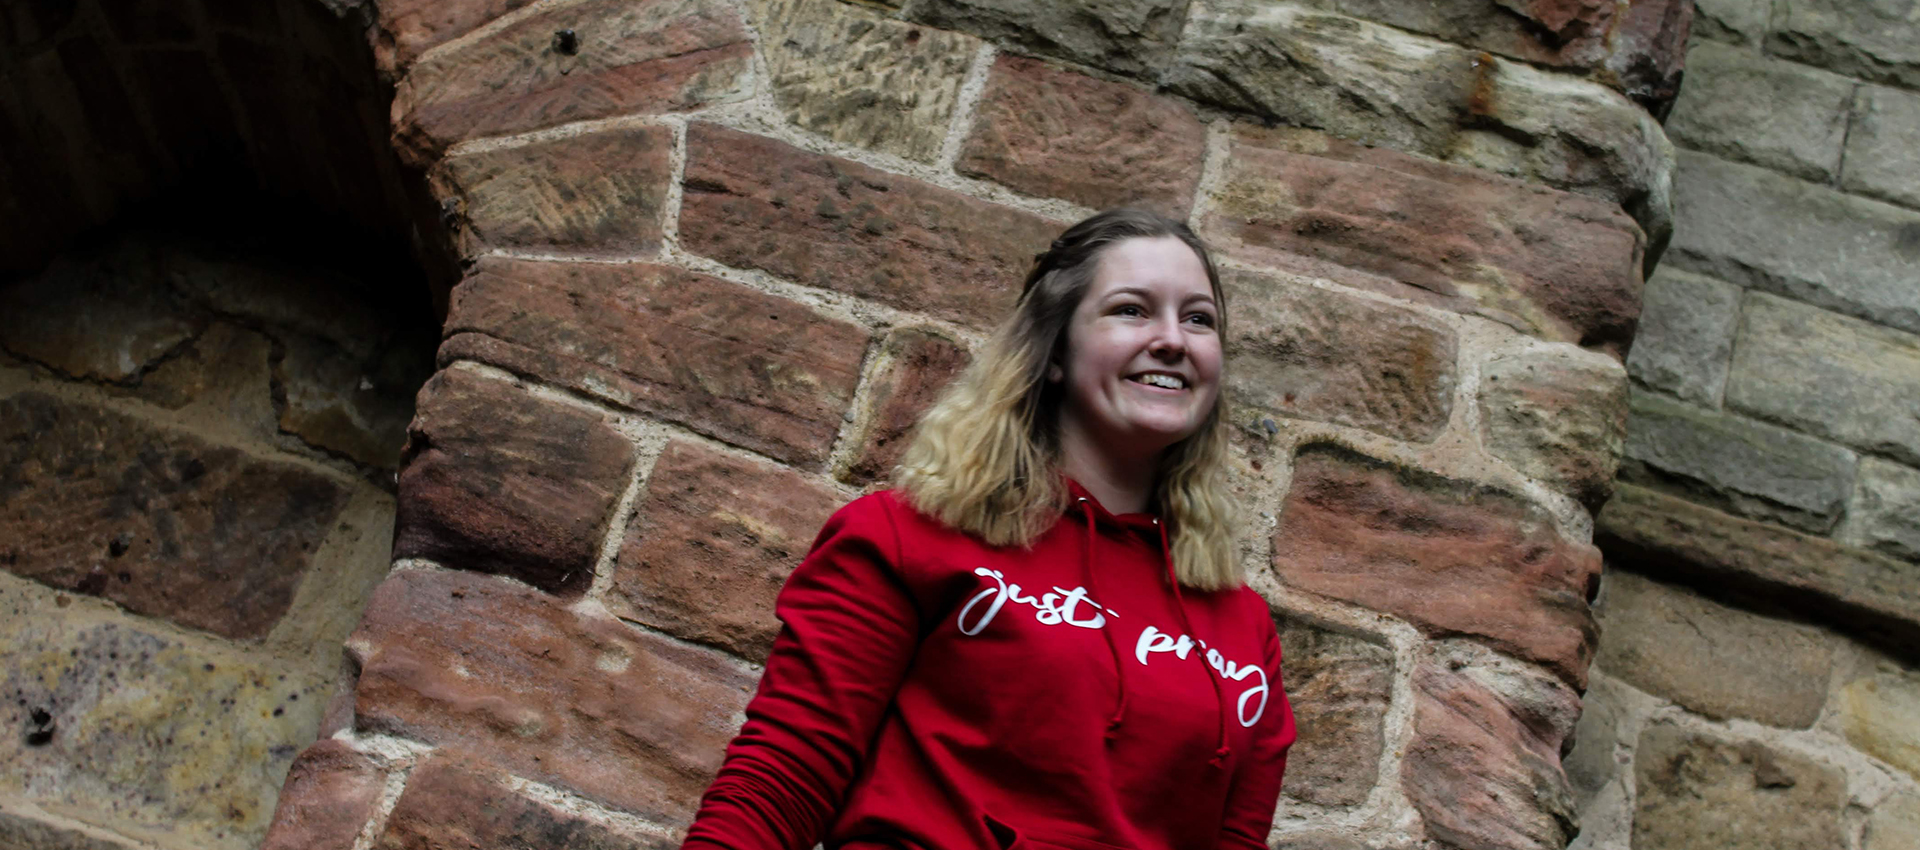 Go Tell Ltd | Just Pray | Girlie College Hoodie | Red Hot Chili